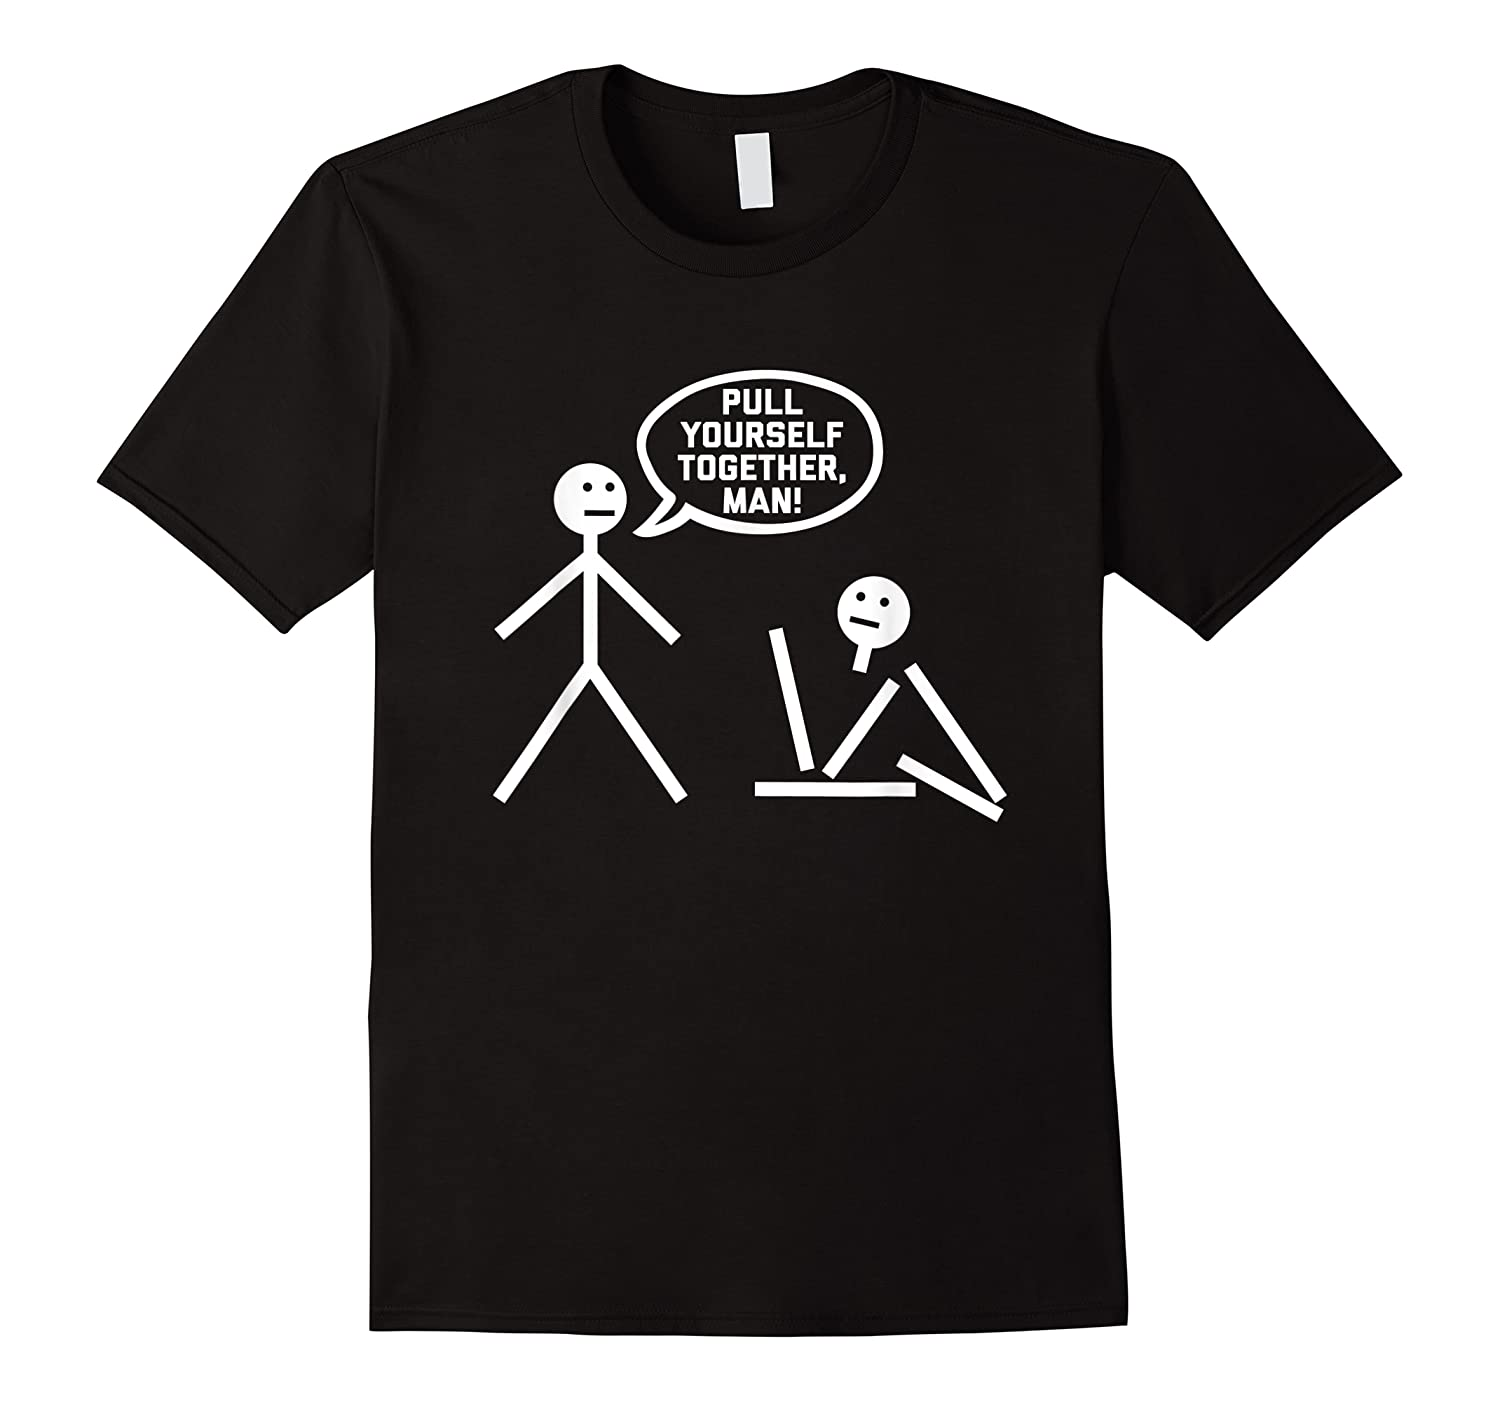 Pull Yourself Together, Man Funny Saying Sarcastic Shirts